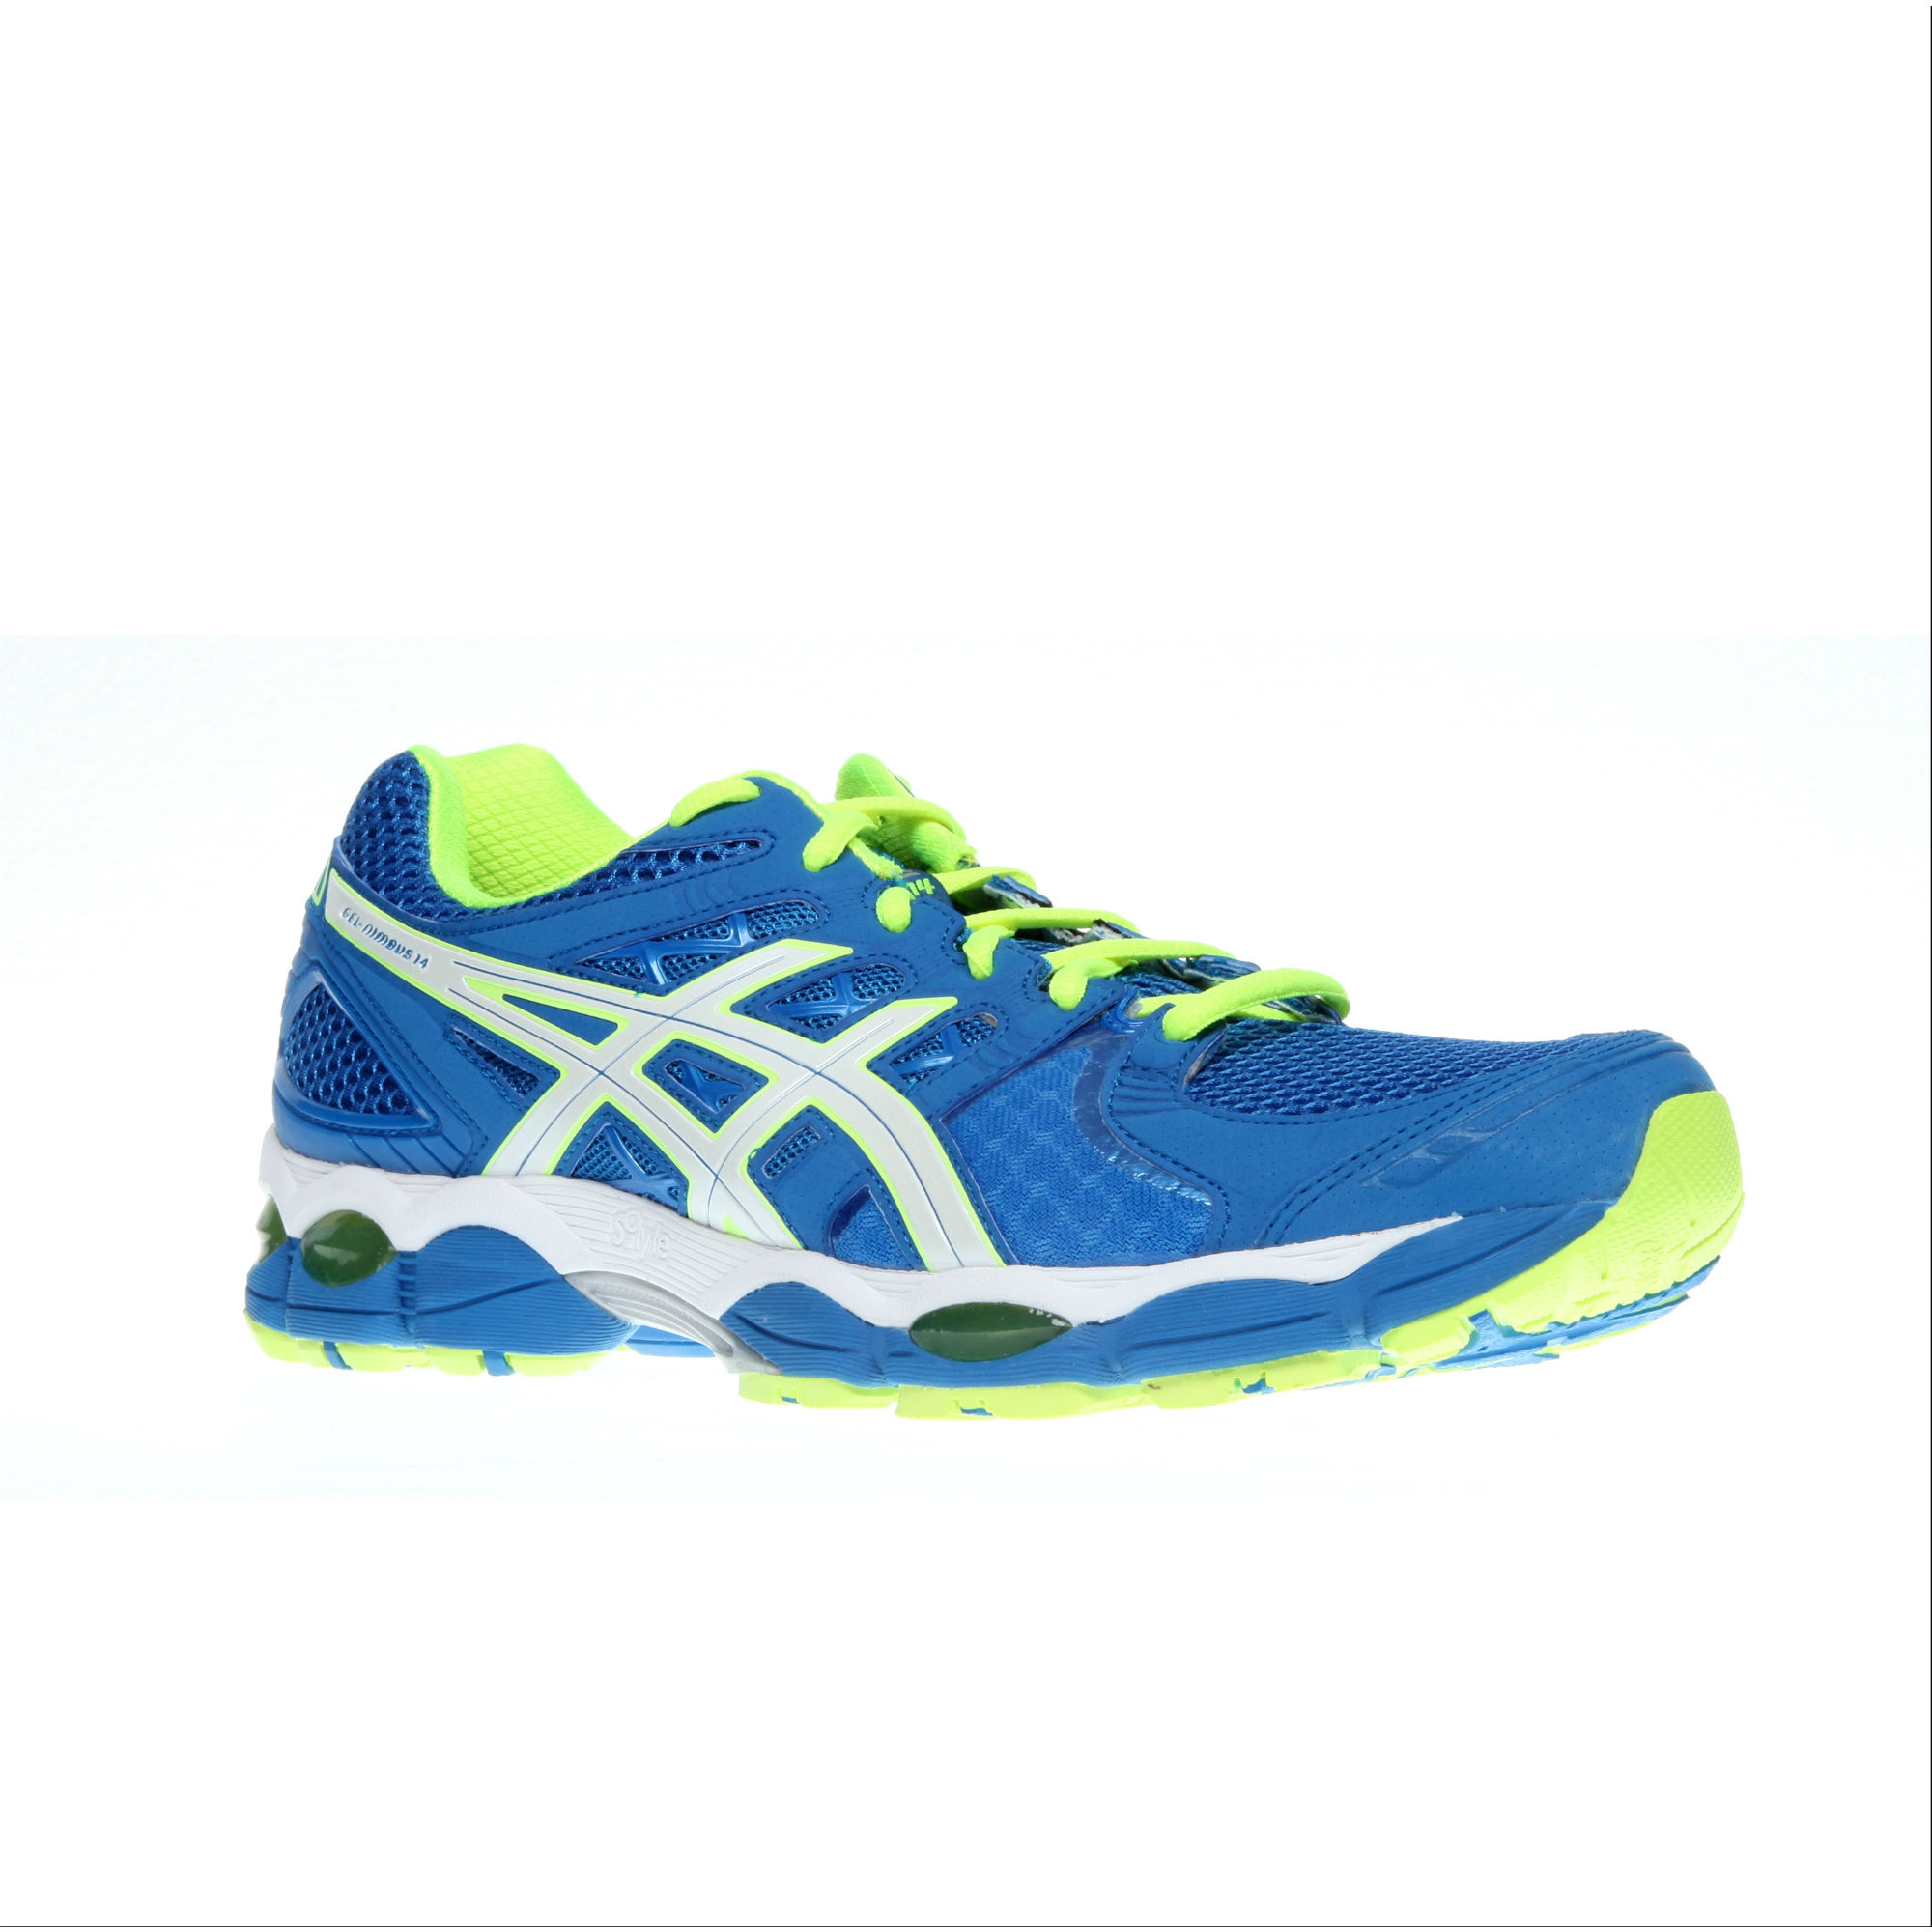 asics gel nimbus 14 replacement